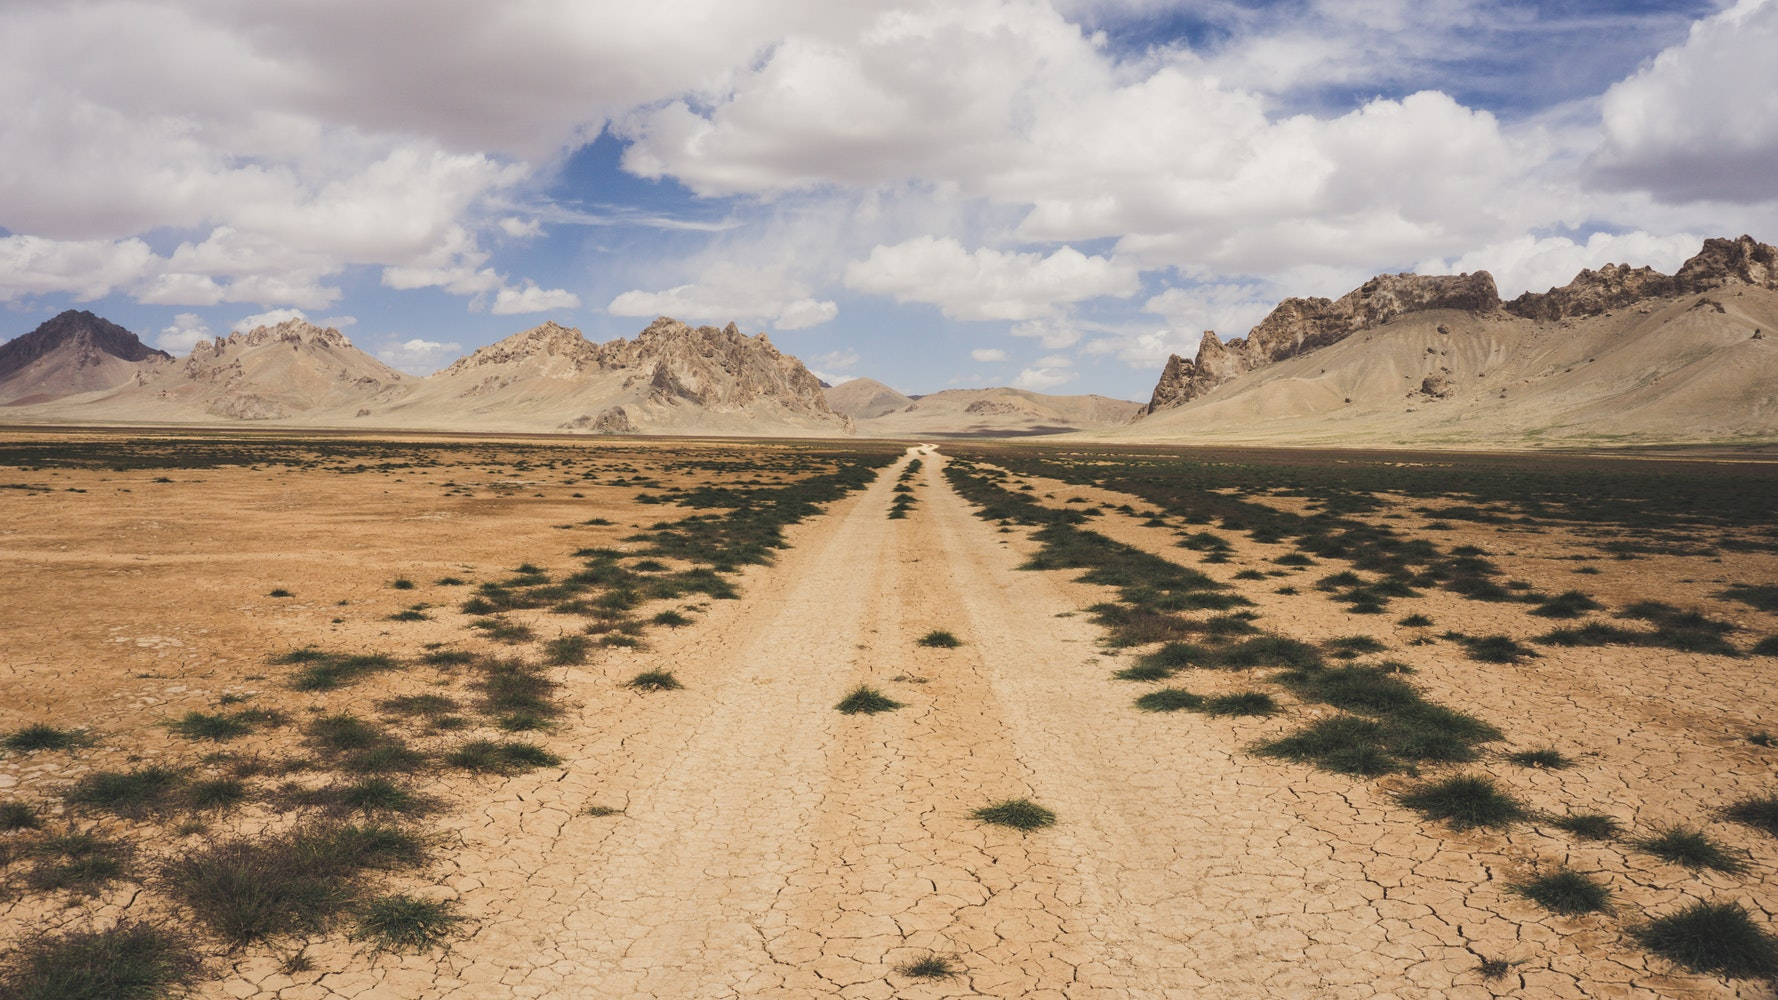 Dirt road in the desert with mountains in the distance